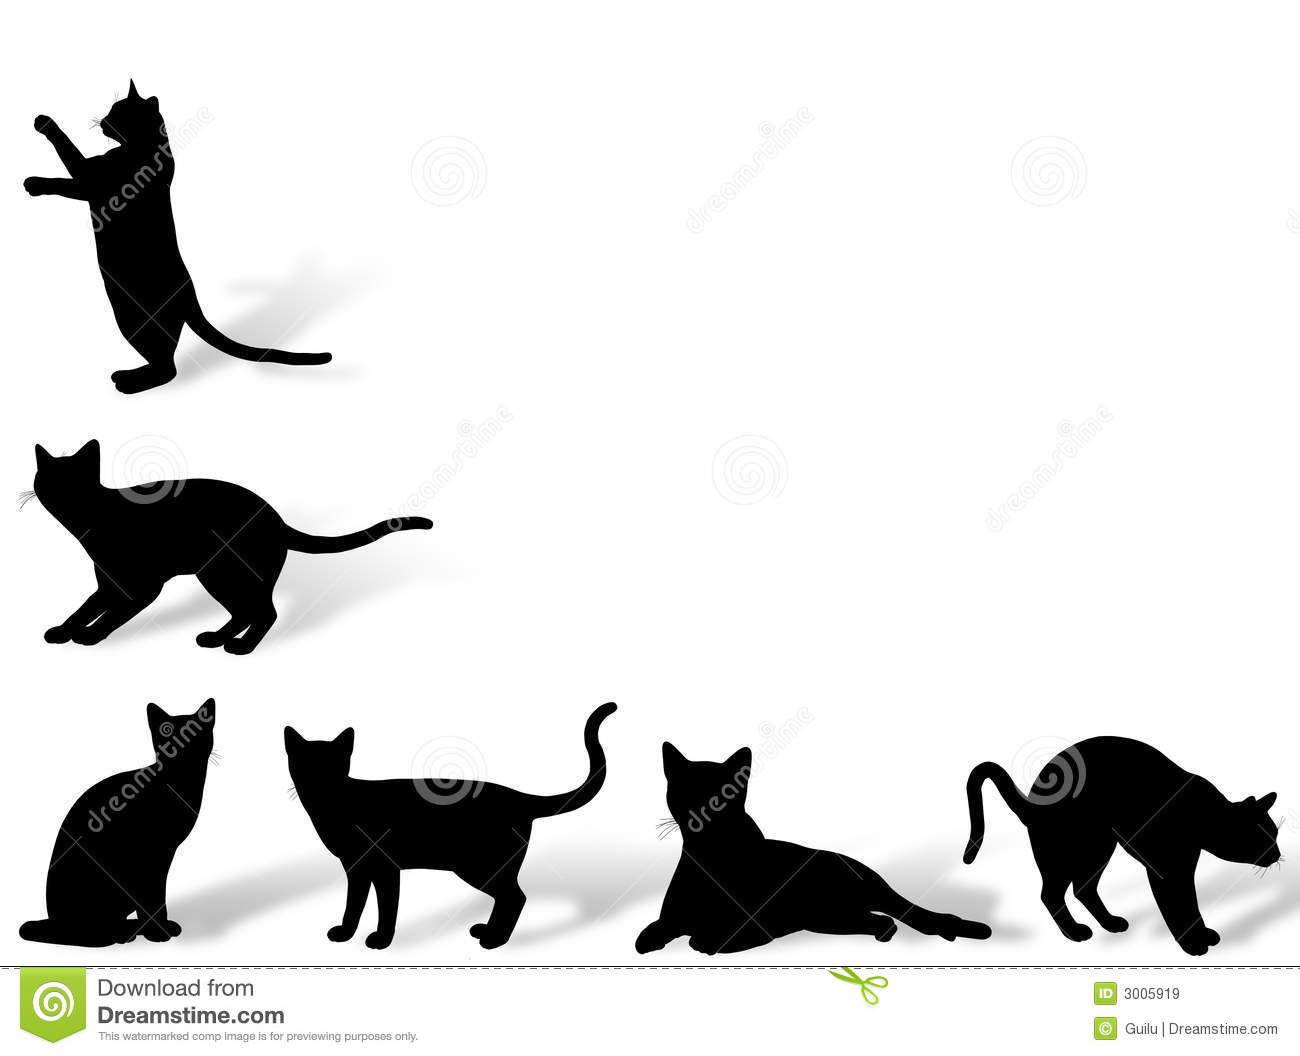 cat frame royalty free stock images   image 3005919